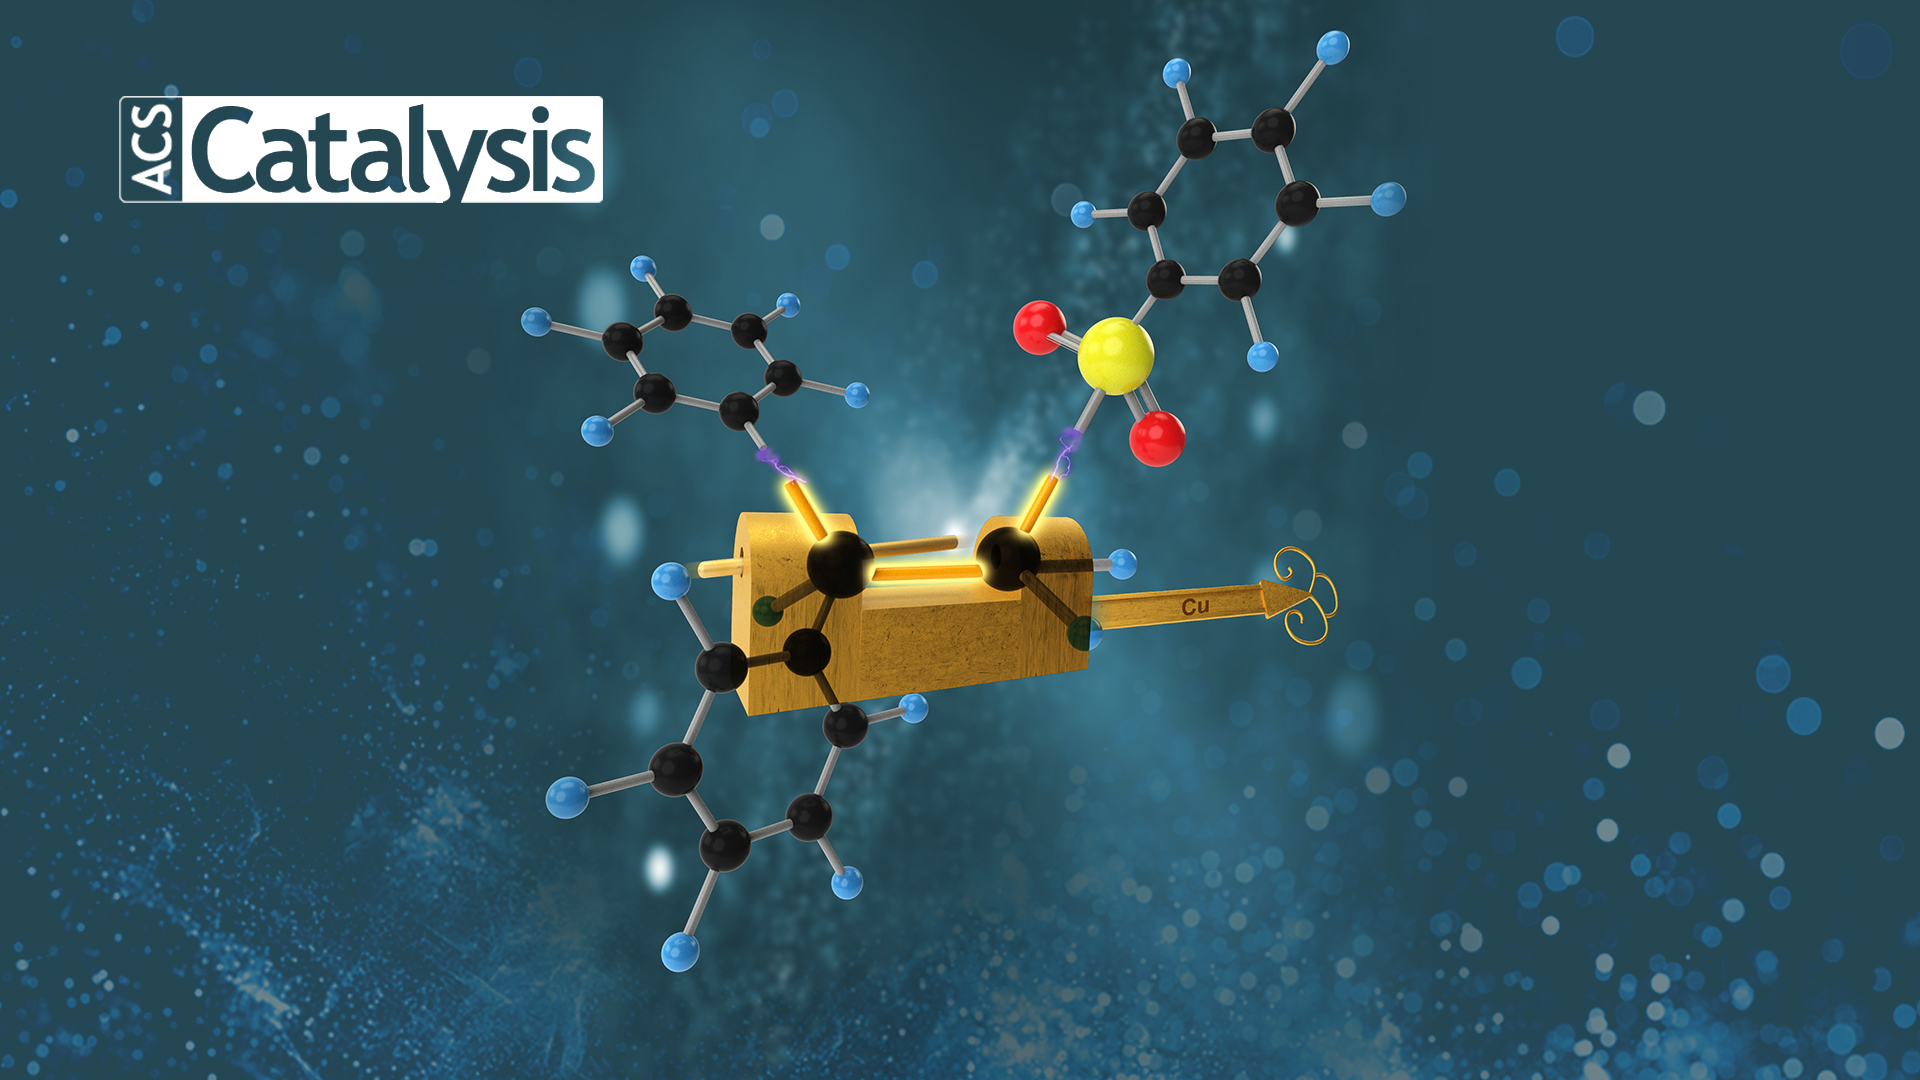 SUSTech researchers find more efficient method for synthesizing drug scaffolds